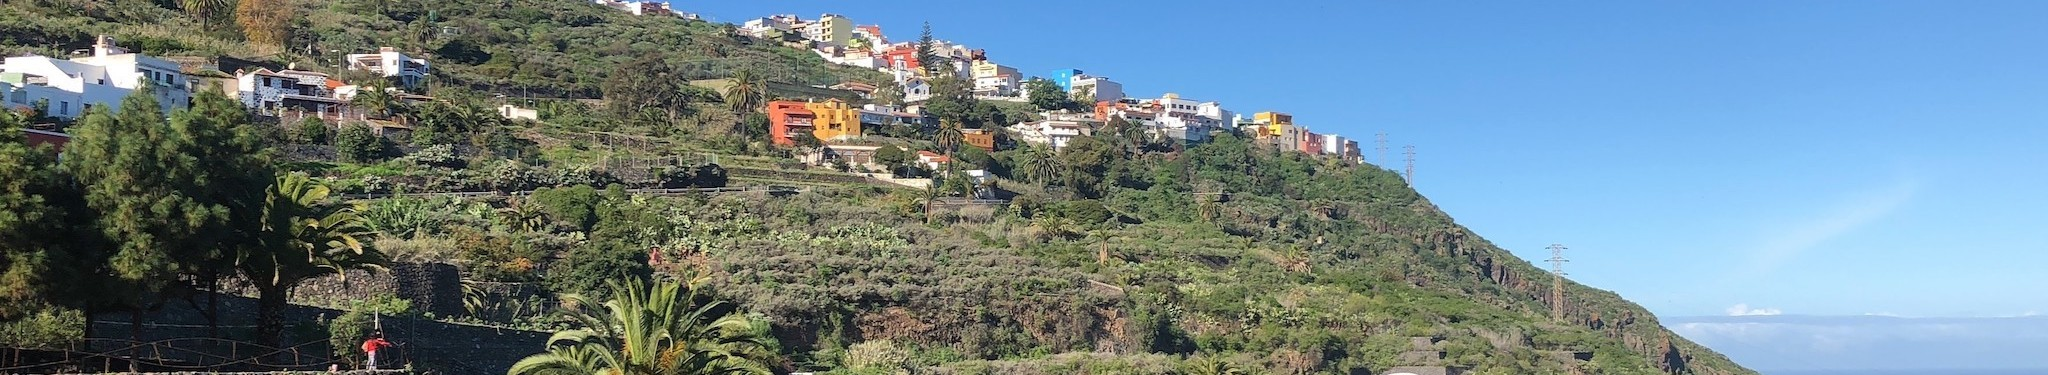 What to do in Tenerife - a view of Icod de los Vinos, in northern Tenerife